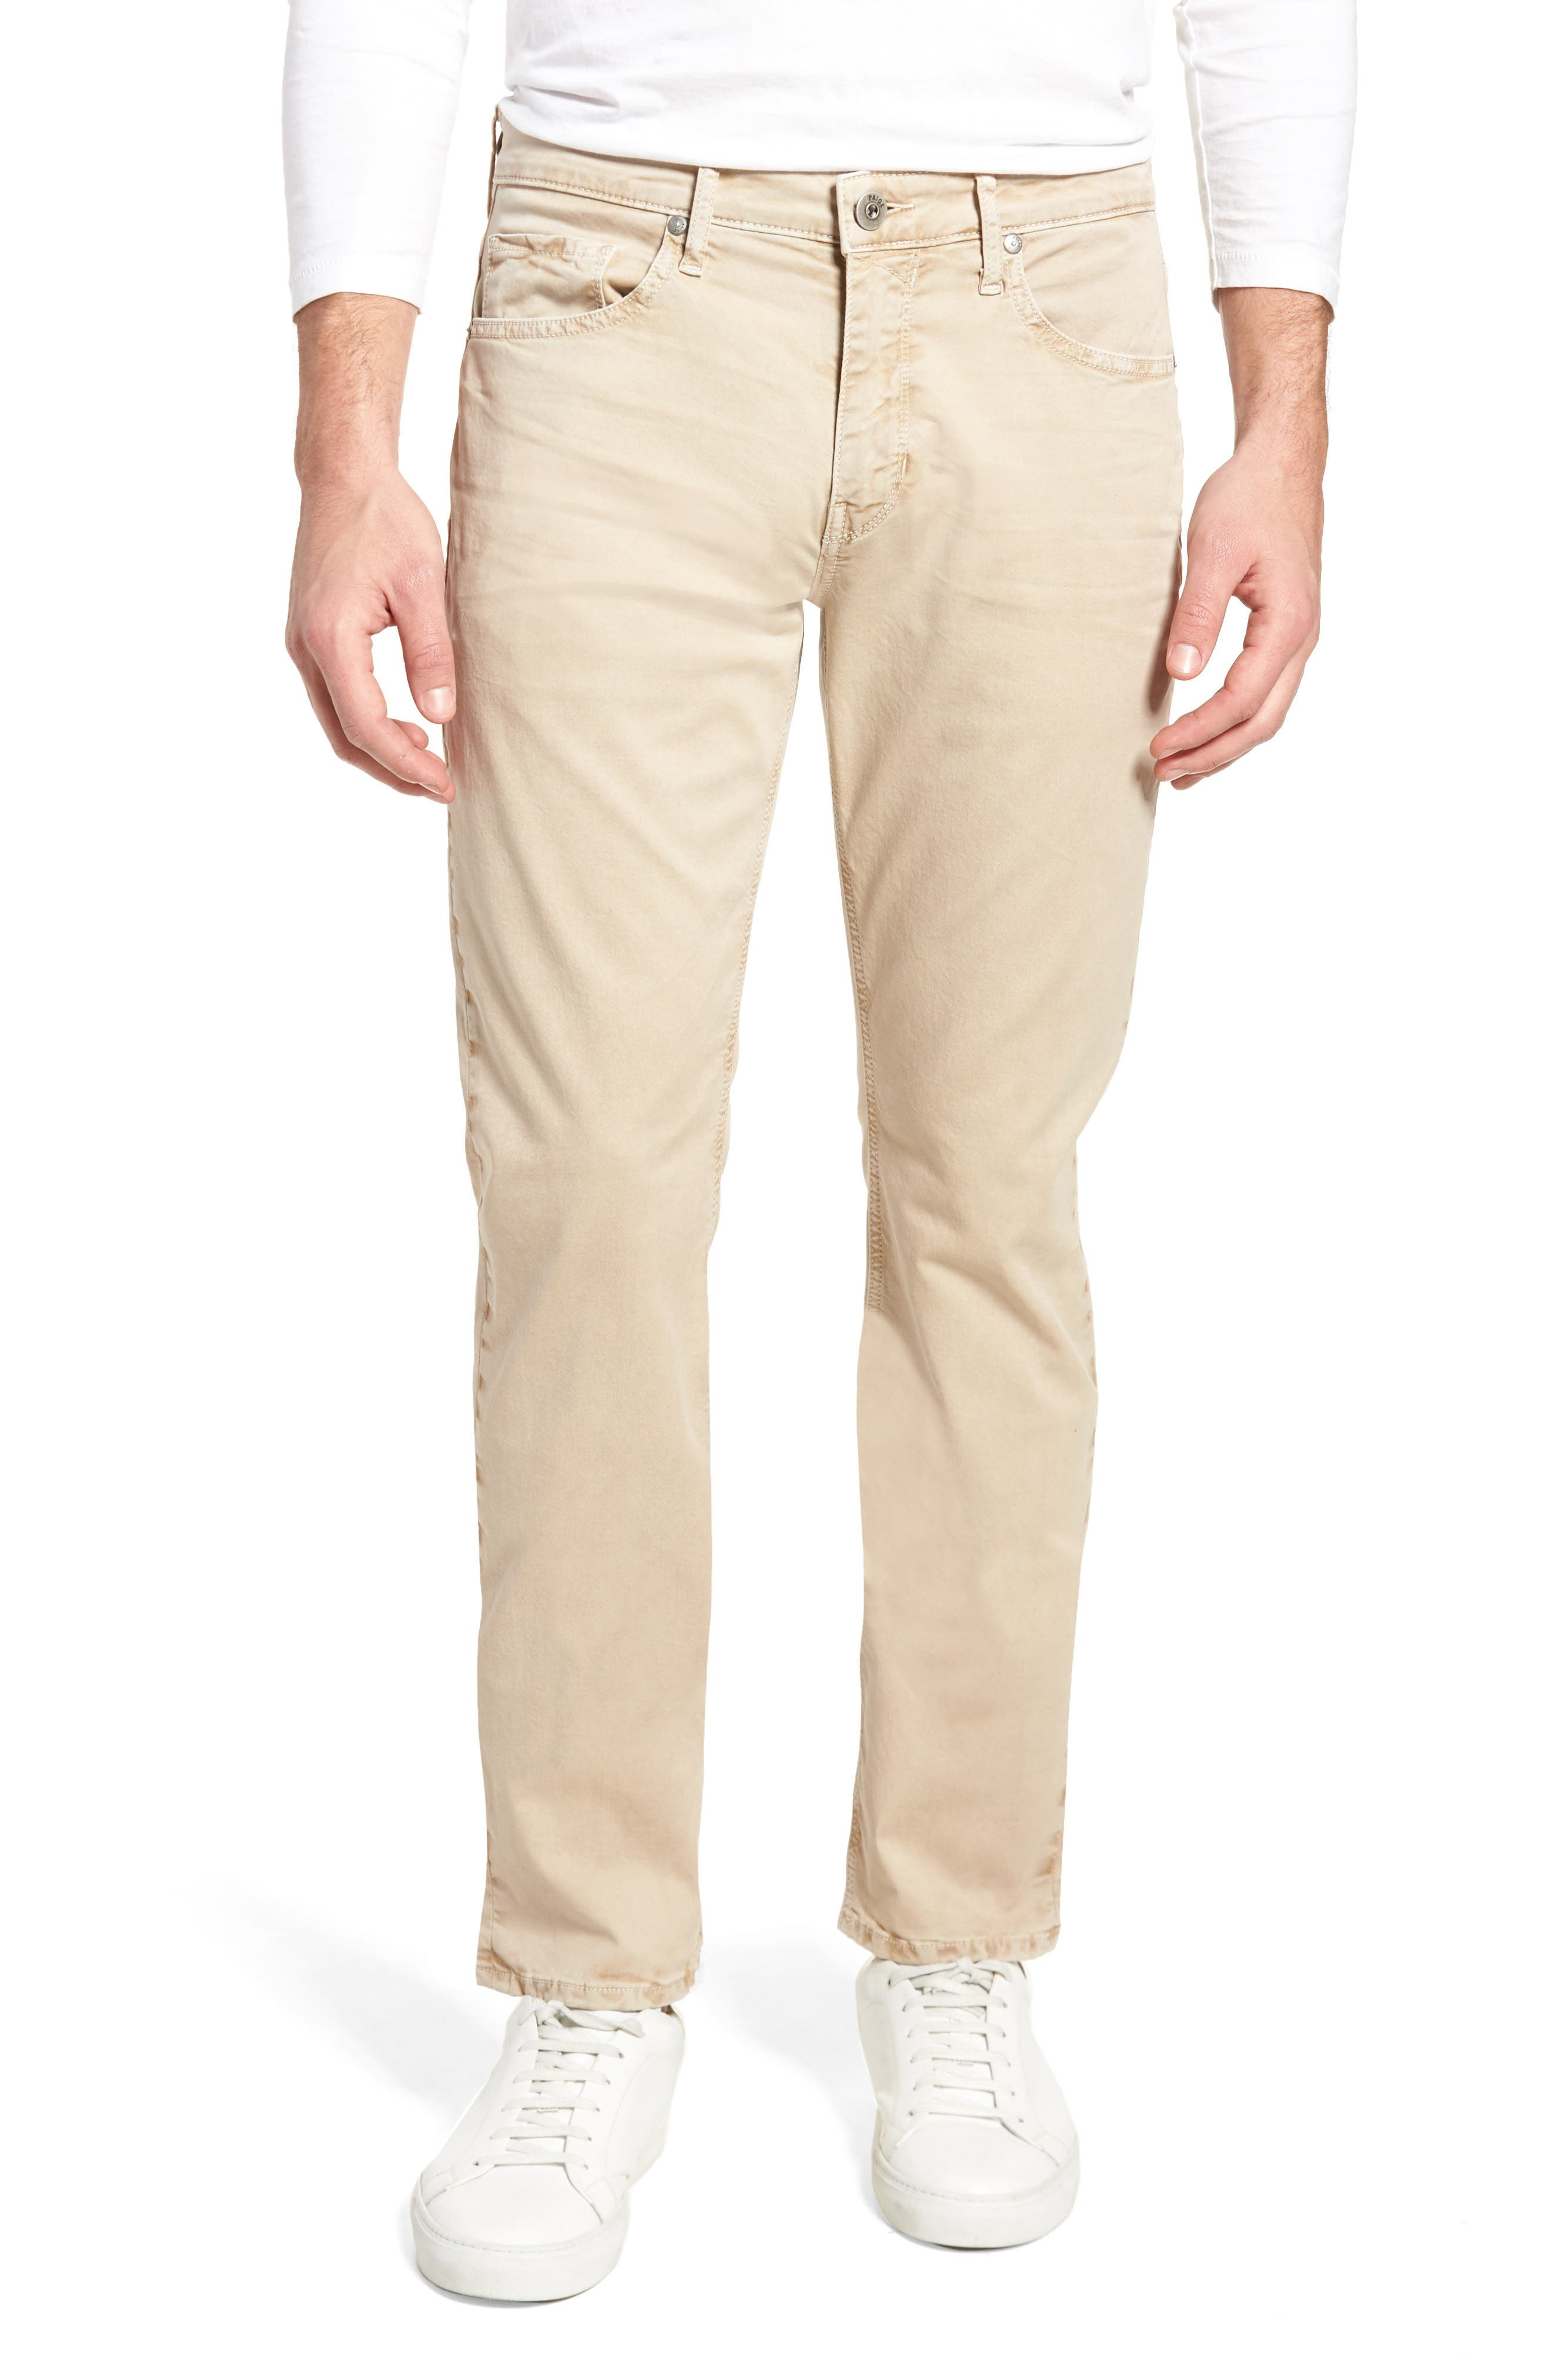 Outlet From China PAIGE Federal Slim Straight Leg Jeans (Vintage Scotch) Shop Sale Online Visit Cheap Price HkC3yzuUi